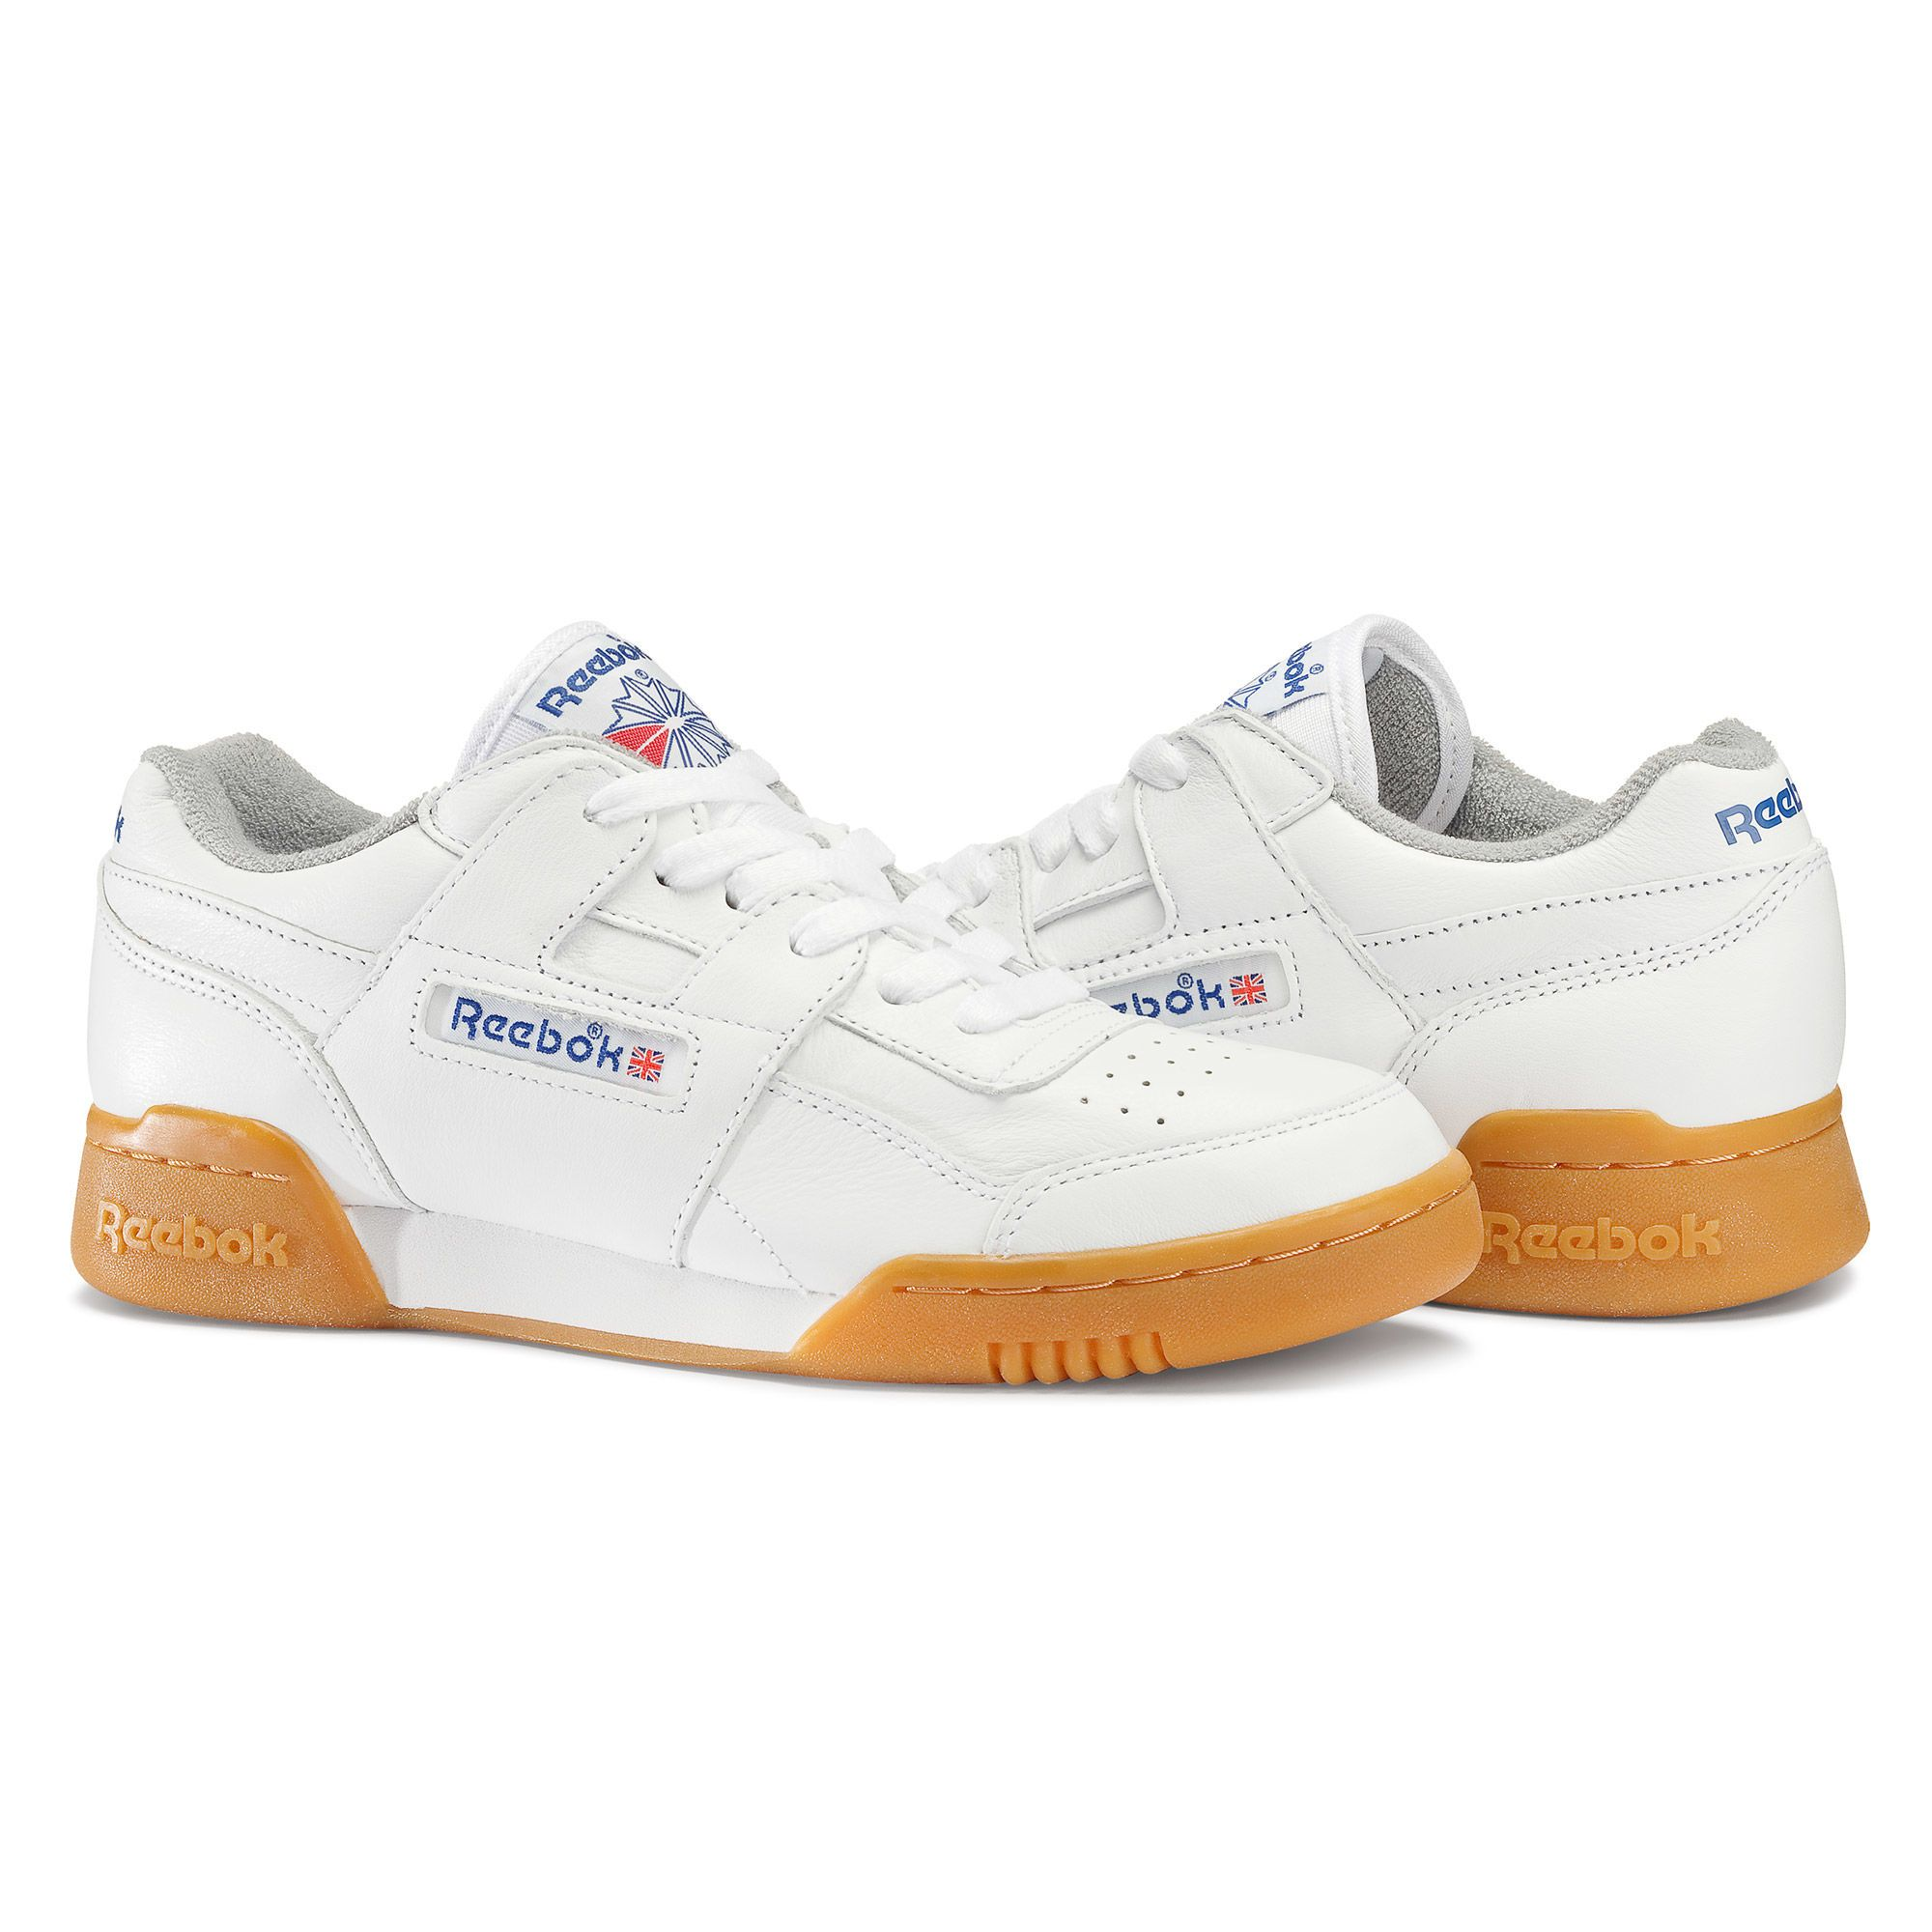 Shop For Workout Plus R12 White At Reebok Co Uk See All The Styles And Colours Of Workout Plus R12 White At The Official Reebok Uk Online Store